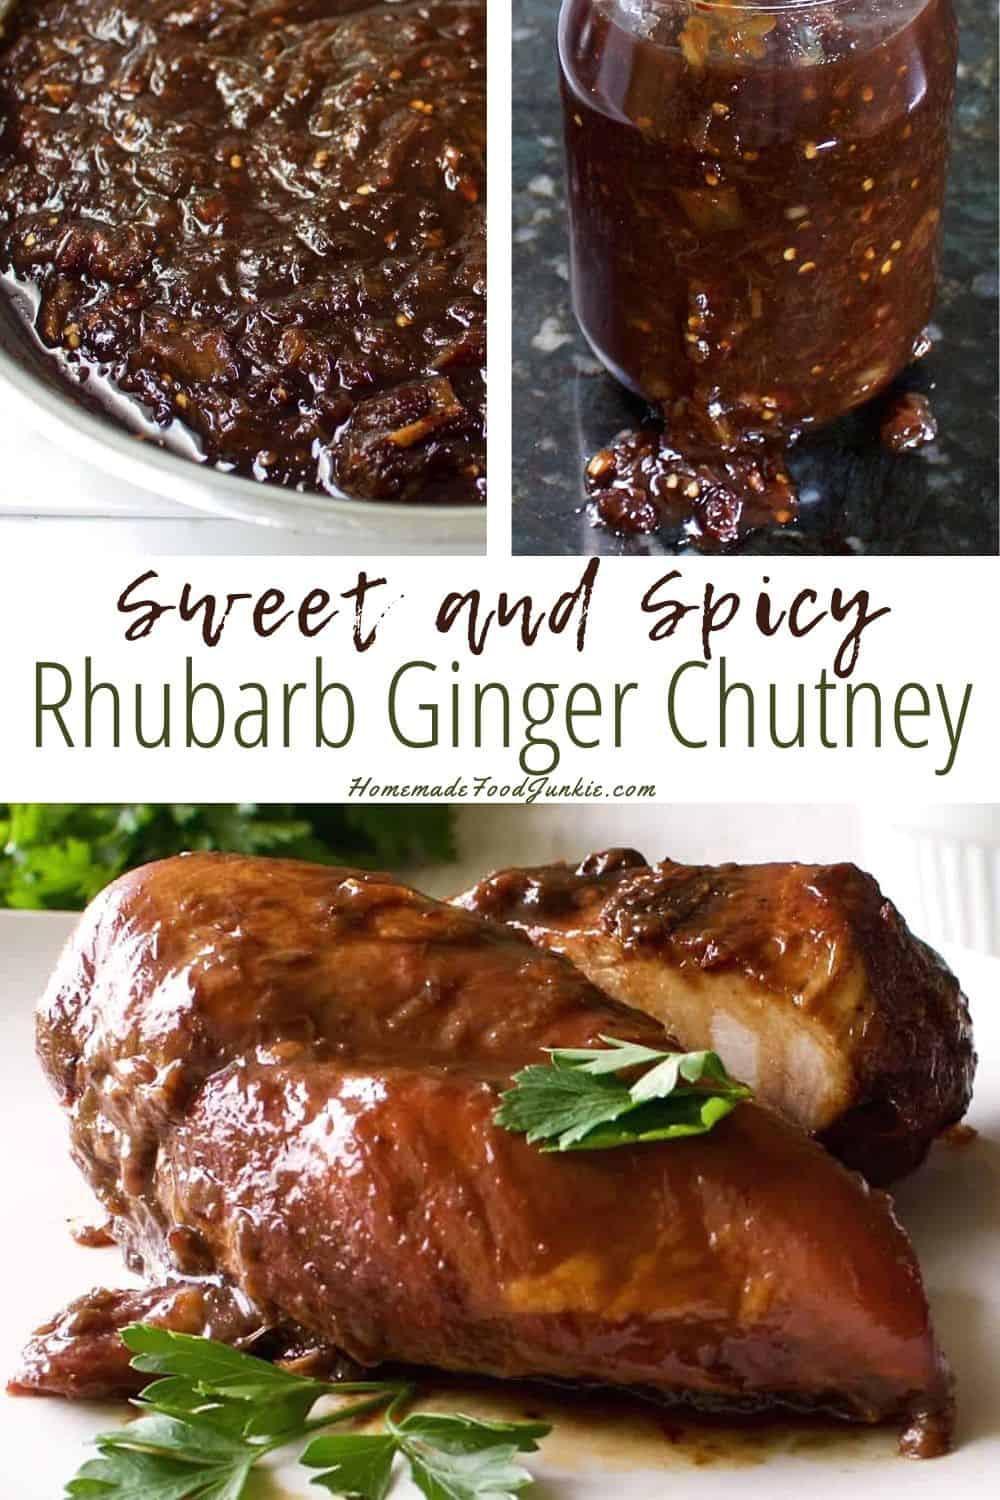 Sweet and spicy rhubarb ginger chutney-pin image